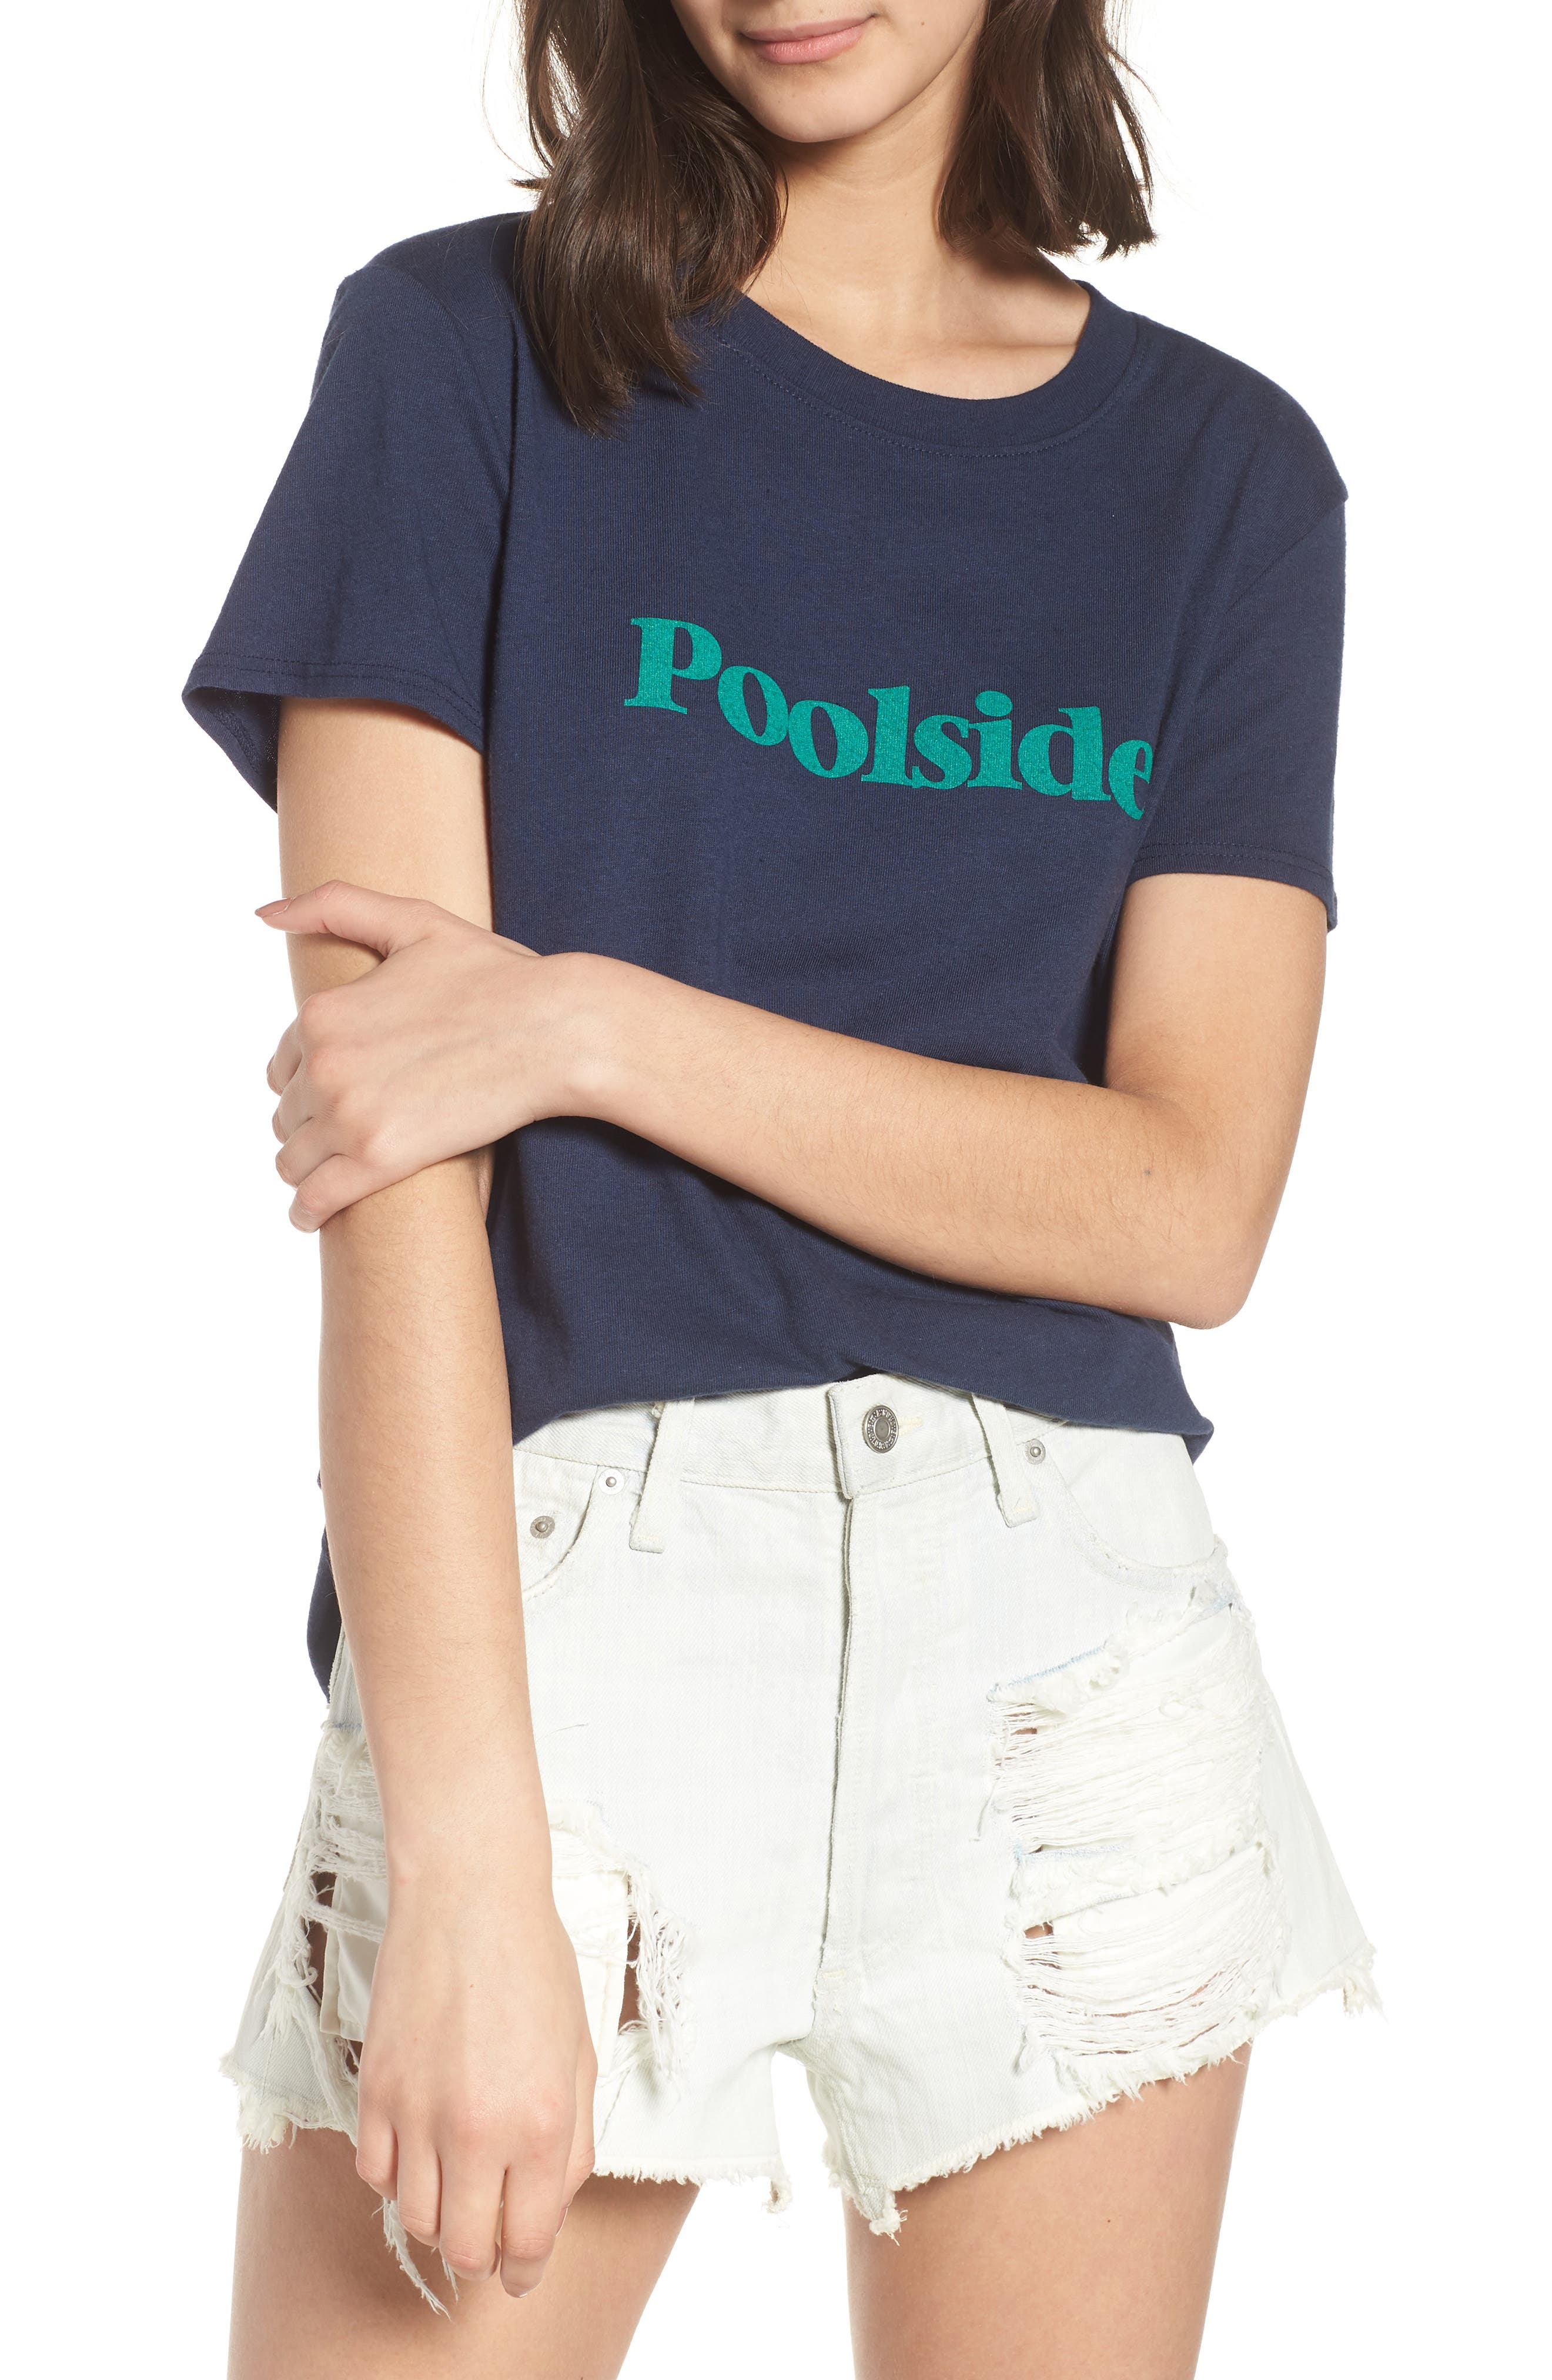 Poolside Graphic Tee,                             Main thumbnail 1, color,                             410